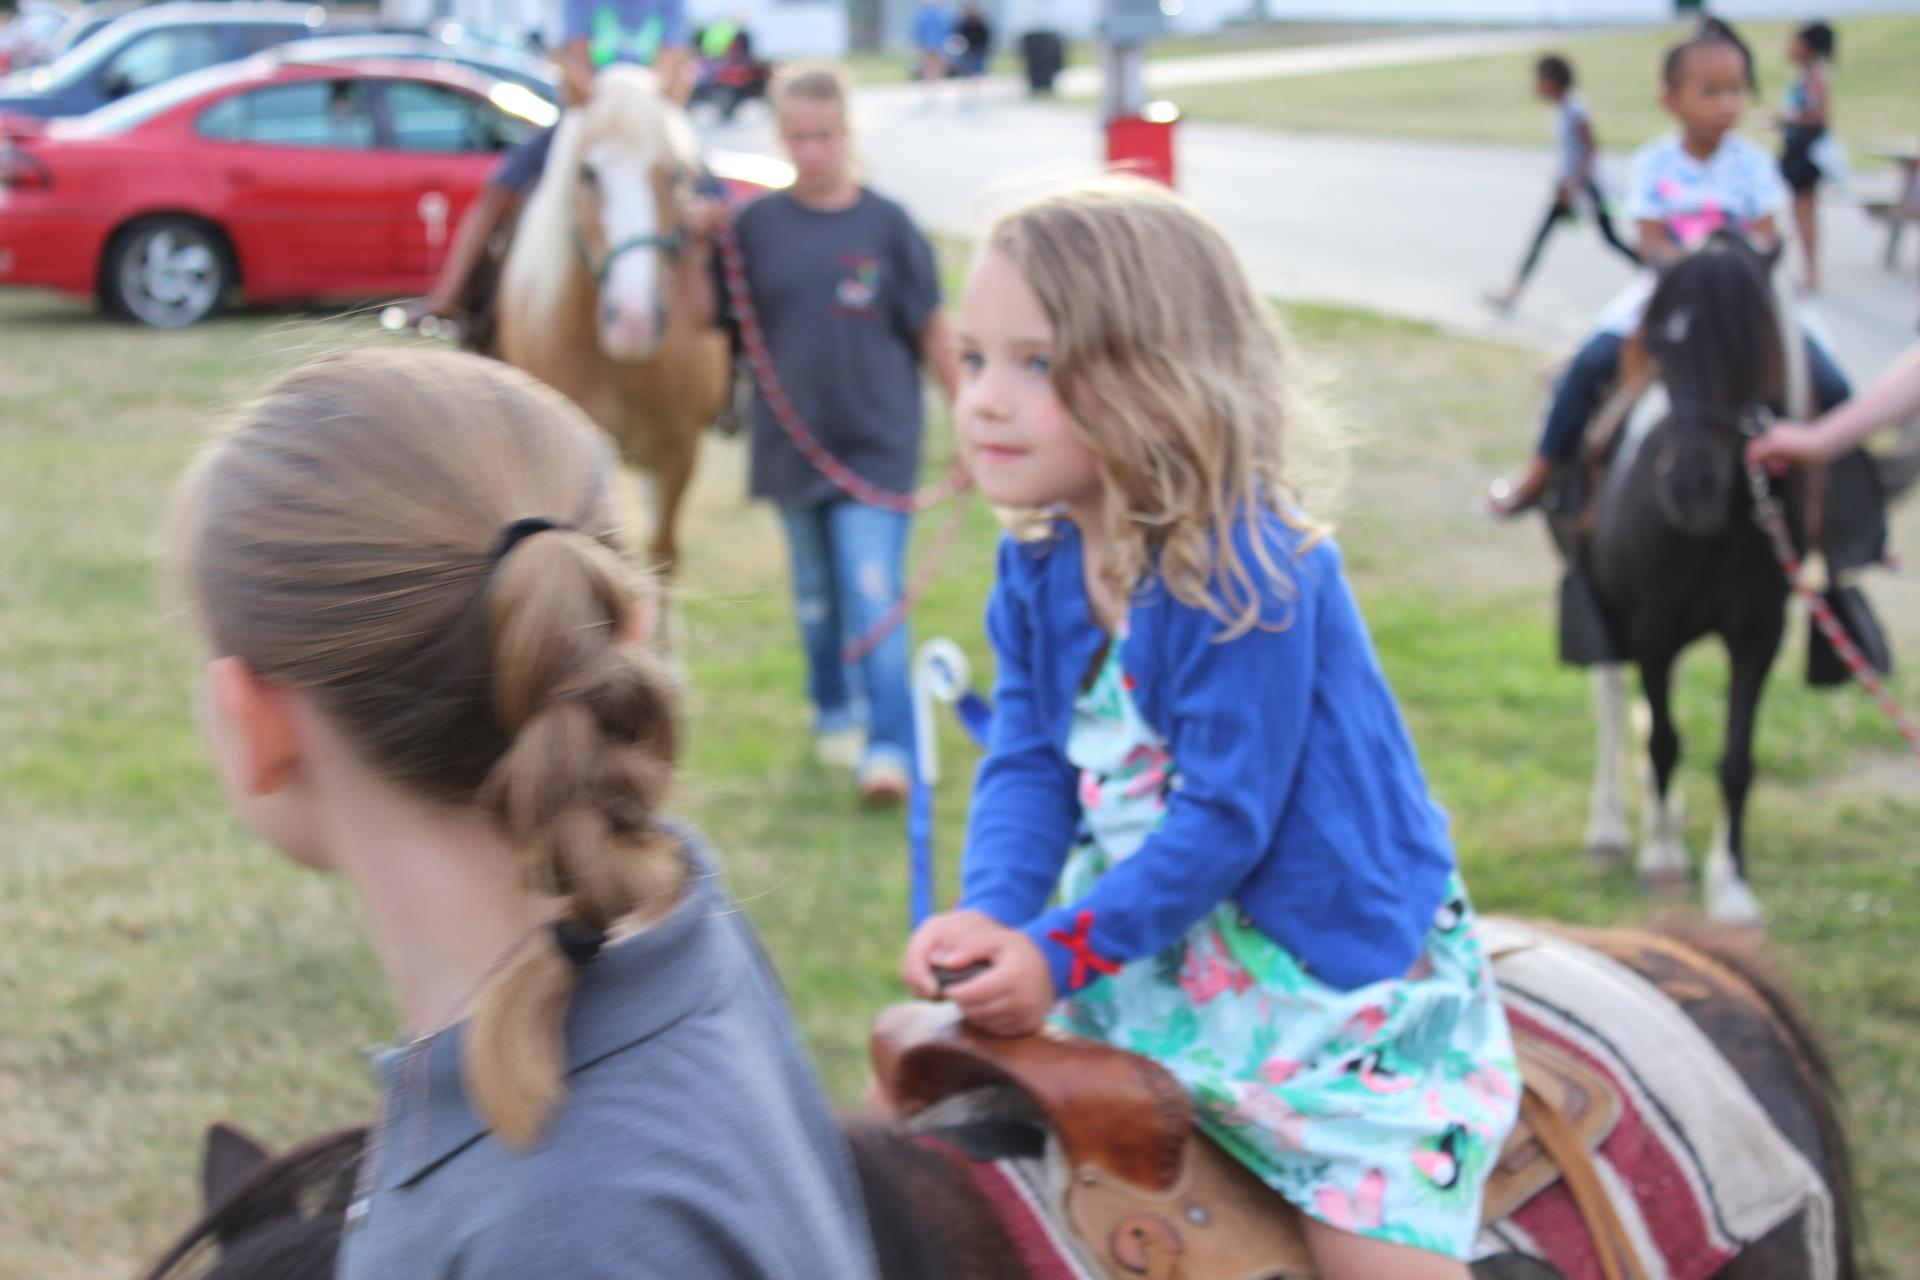 Pony rides at the Fireworks Fest